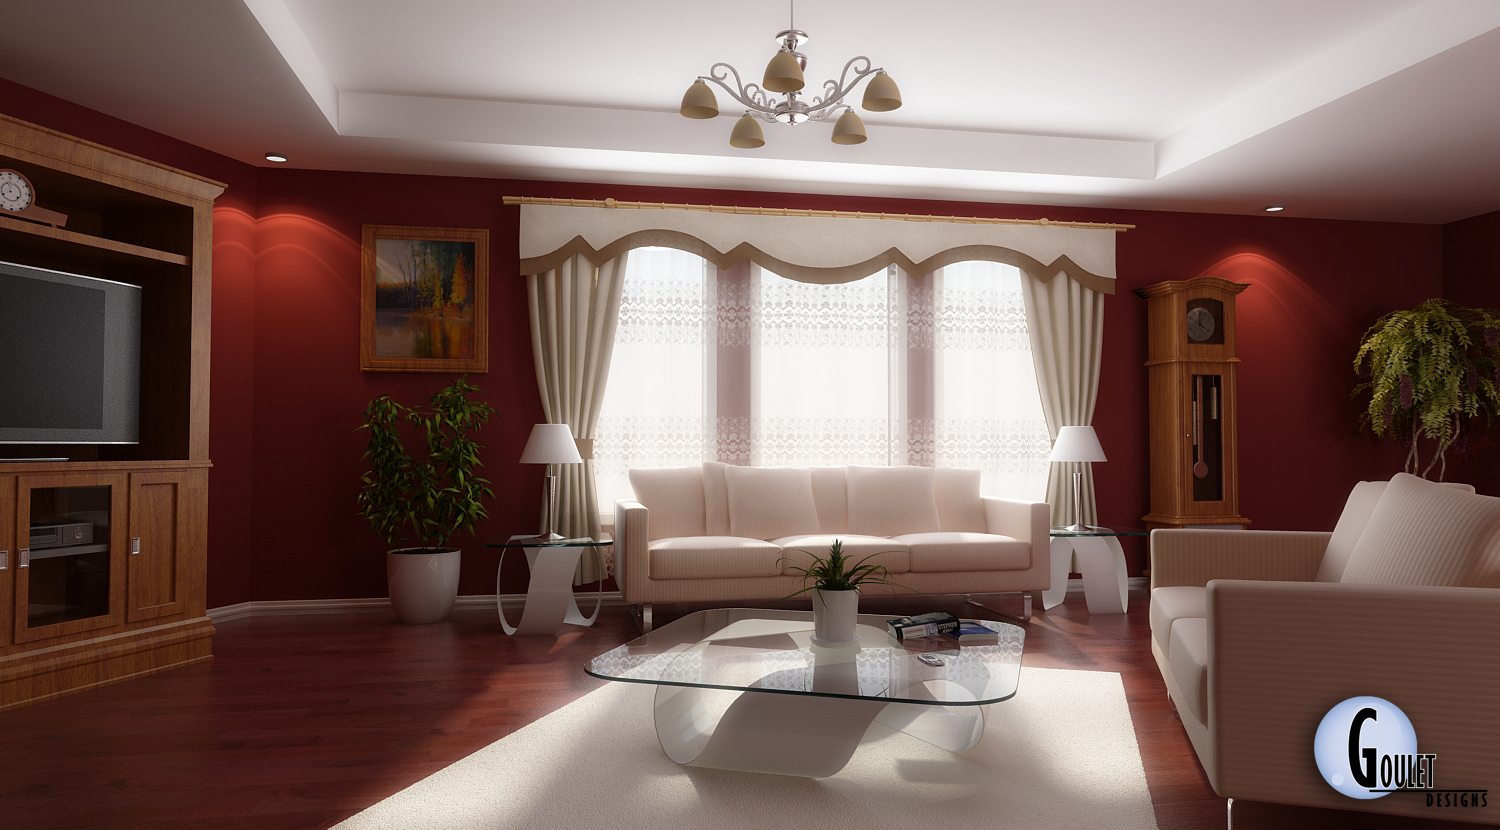 Living room decorating home designer for Living room design ideas images